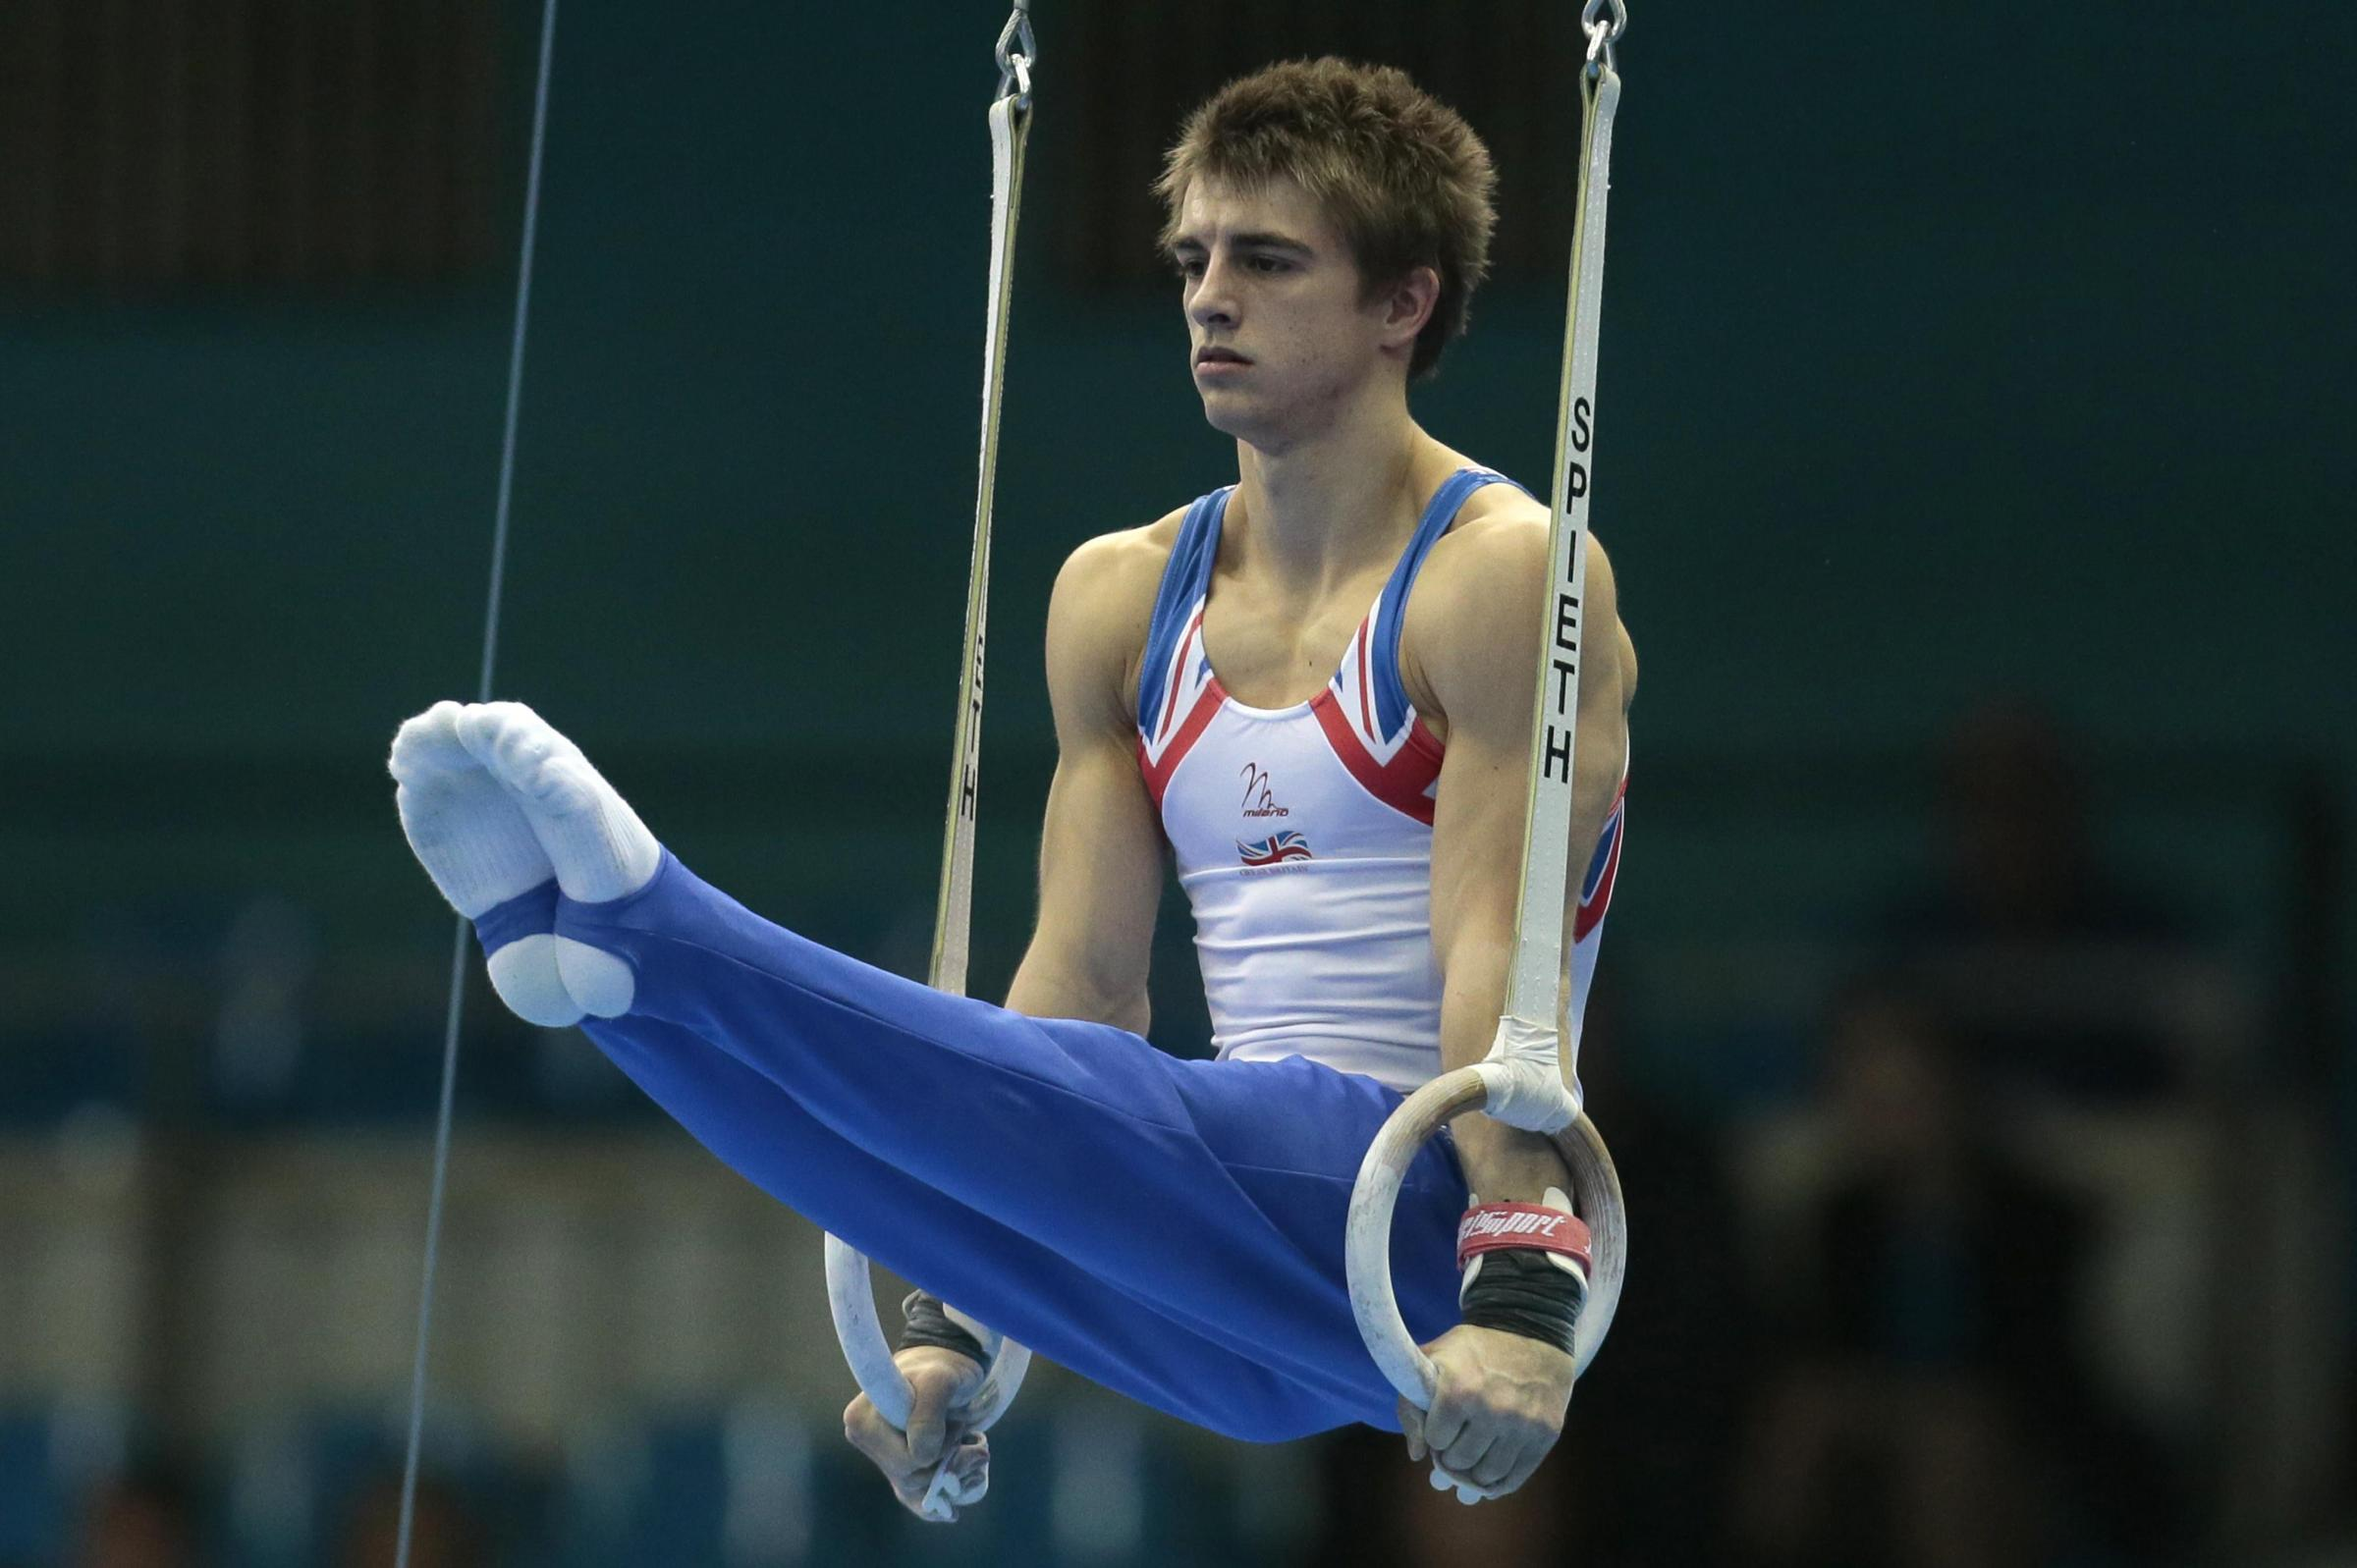 World Championships debut - Max Whitlock